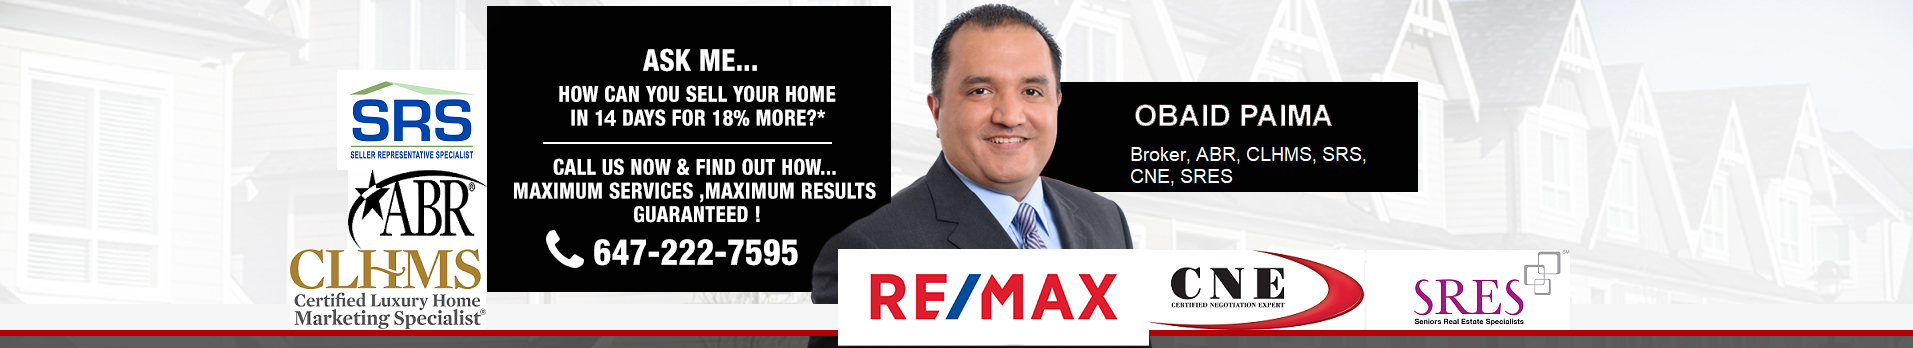 197 Glen Oak Dr,  (MLS® #: W4852000) -  See this detached house for sale in Bronte East, Oakville